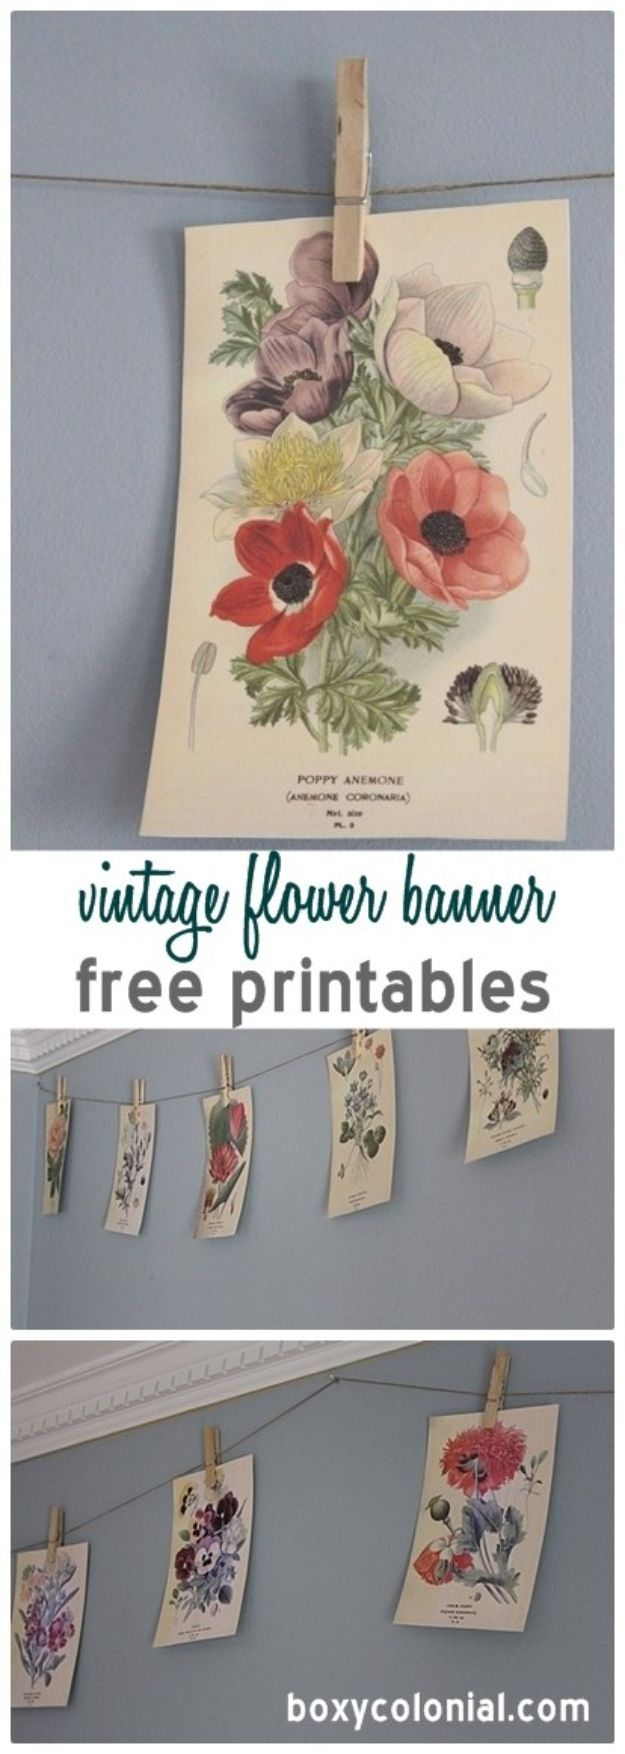 Free Printables For Your Walls - Vintage Flower banner Free Printables - Easy Canvas Ideas With Free Downloadable Artwork and Quote Sayings - Best Free Prints for Wall Art and Picture to Print for Home and Bedroom Decor - Signs for the Home, Organization, Office - Quotes for Bedroom and Kitchens, Vintage Bathroom Pictures - Downloadable Printable for Kids - DIY and Crafts by DIY JOY #wallart #freeprintables #diyideas #diyart #walldecor #diyhomedecor #freeprintables